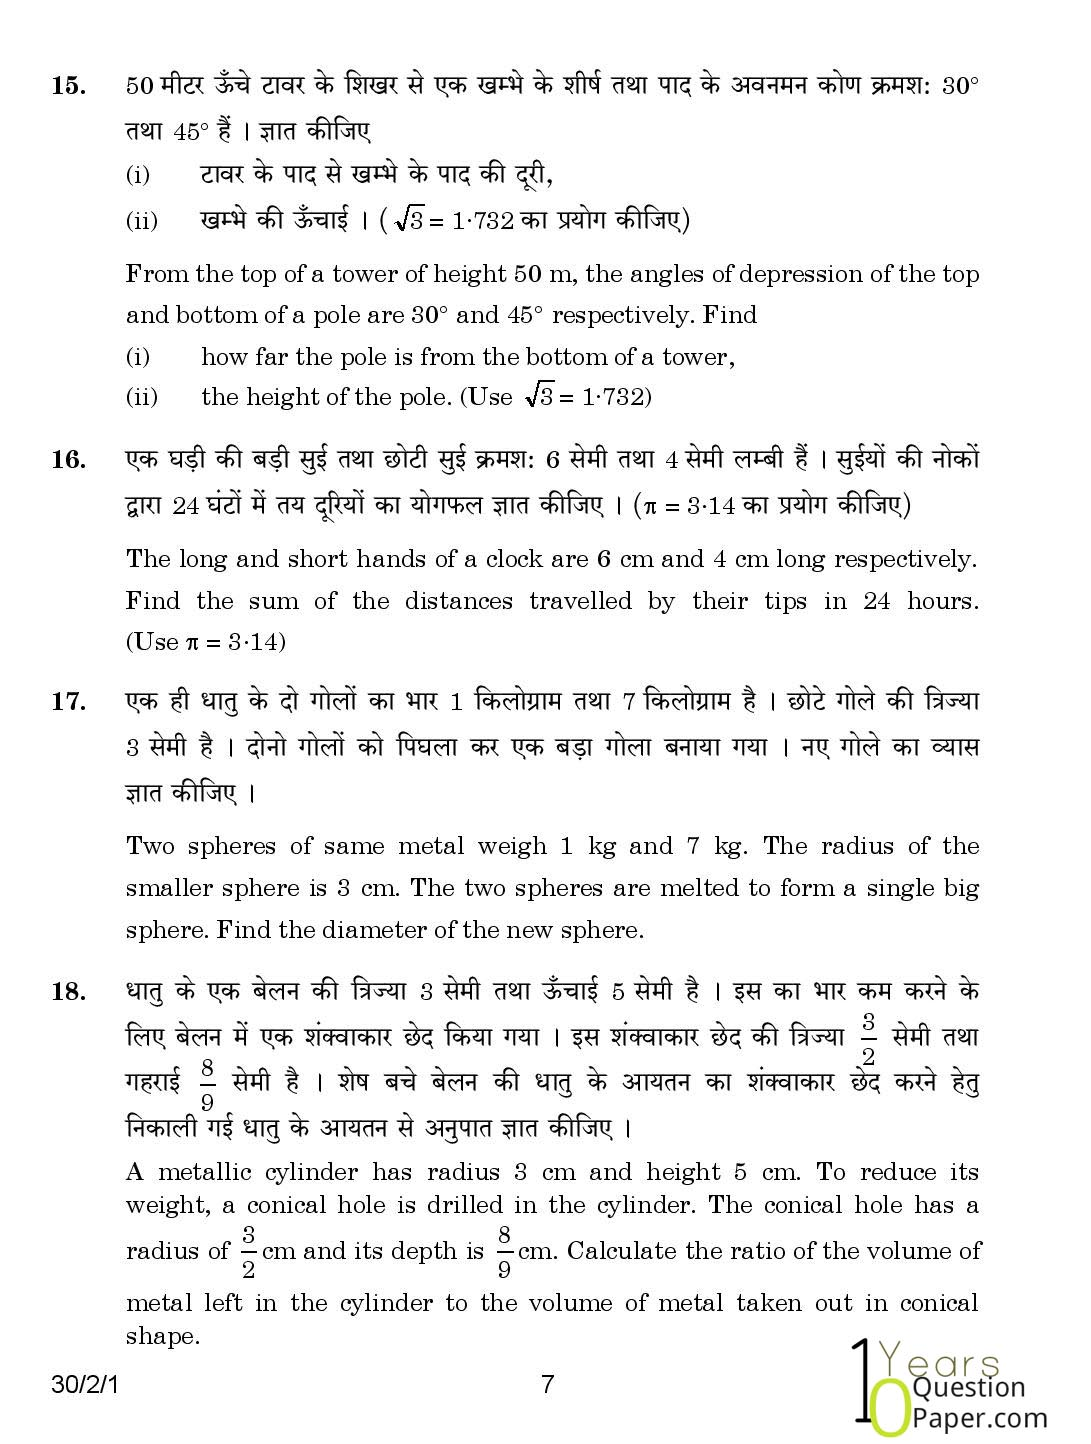 cbse class 10th 2015 Mathematics question paper